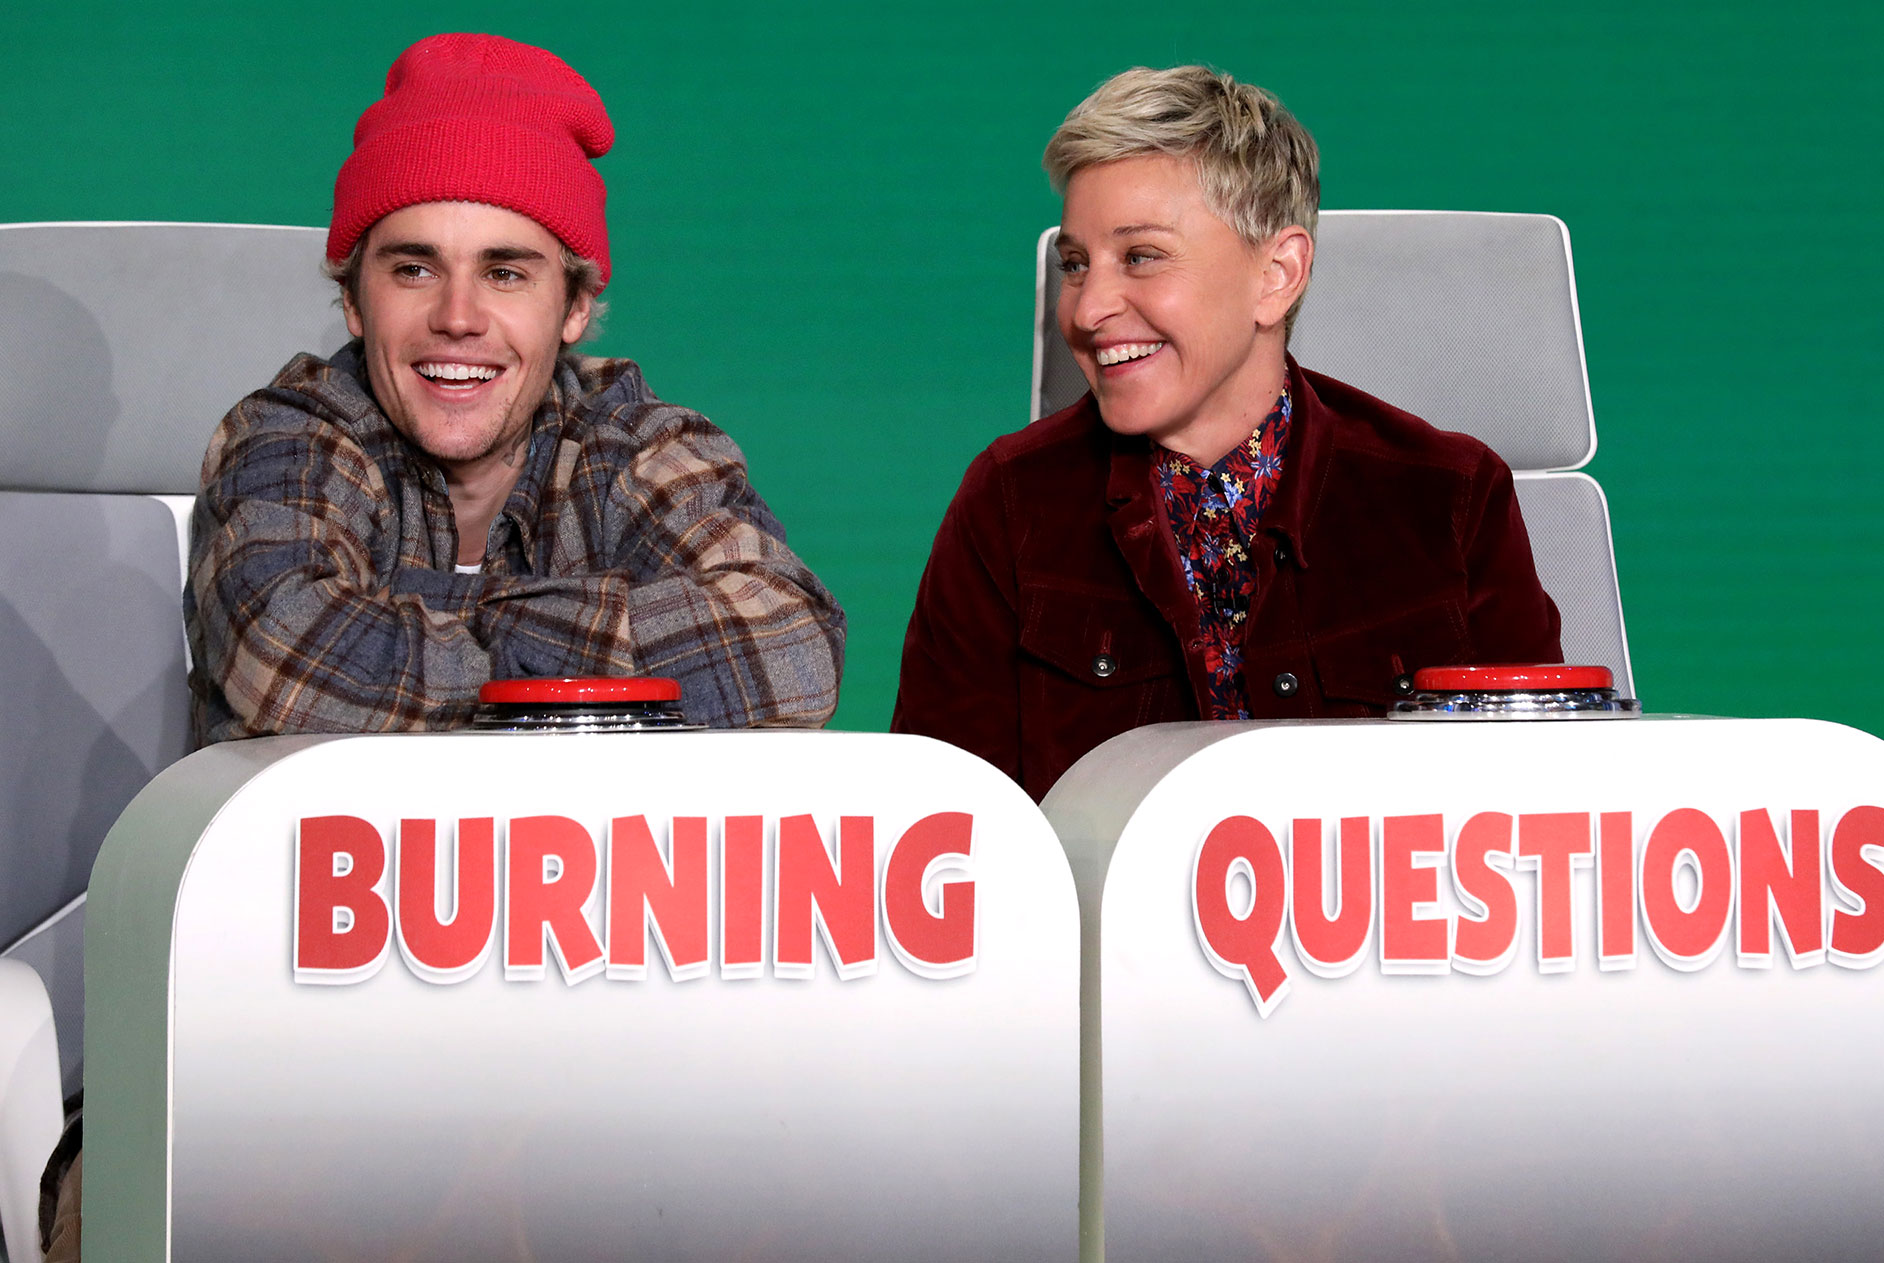 Justin Bieber and Hailey Bieber Ellen DeGeneres Show Same Pet Name